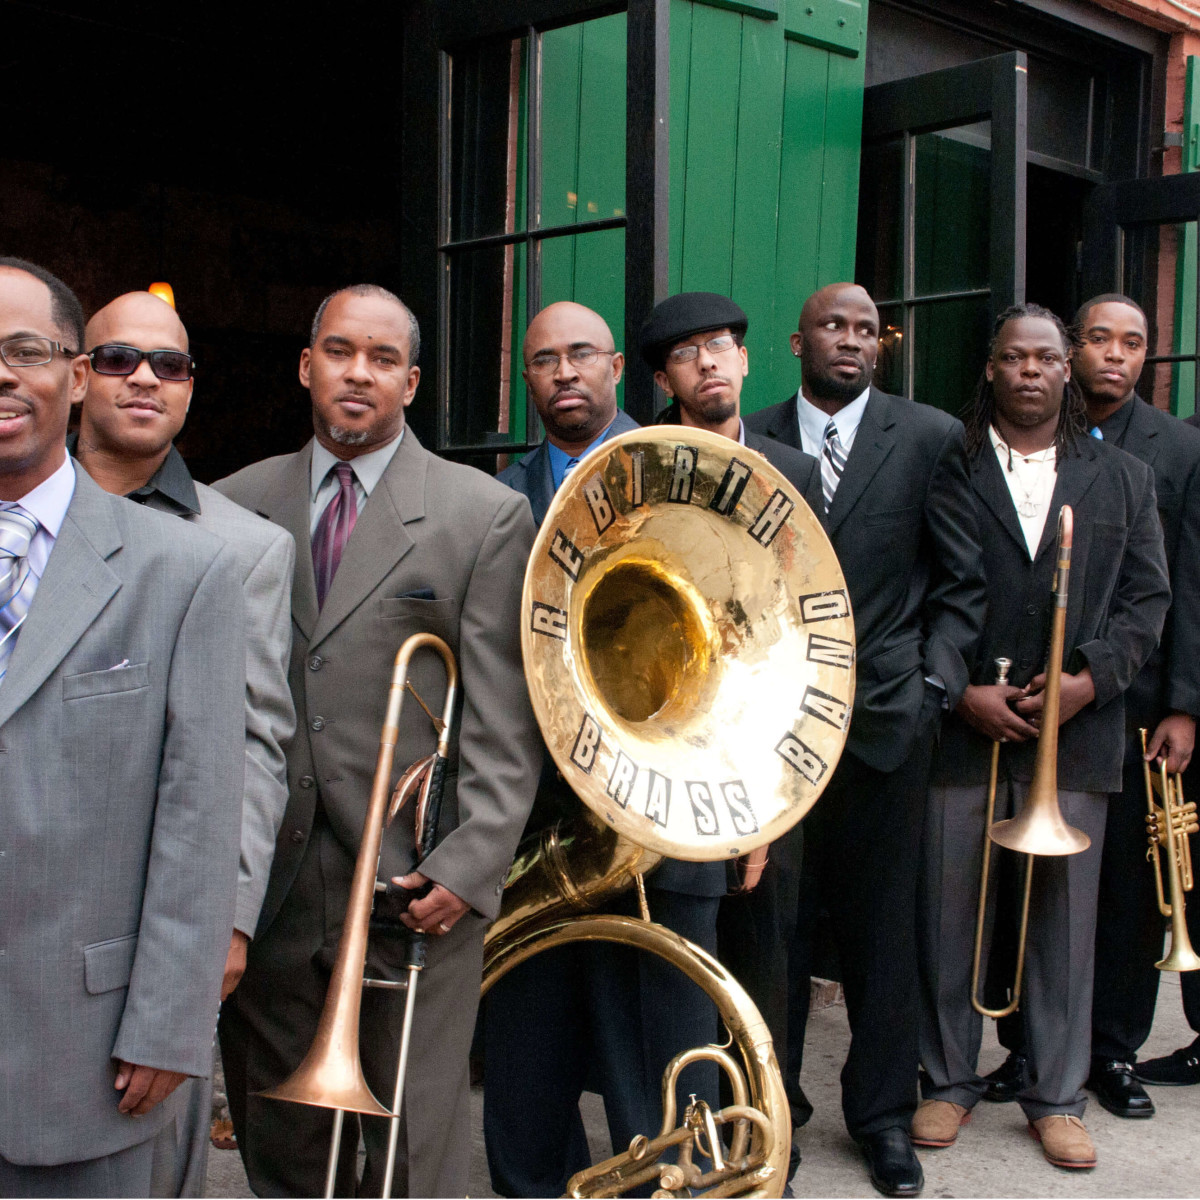 Rebirth Brass Band